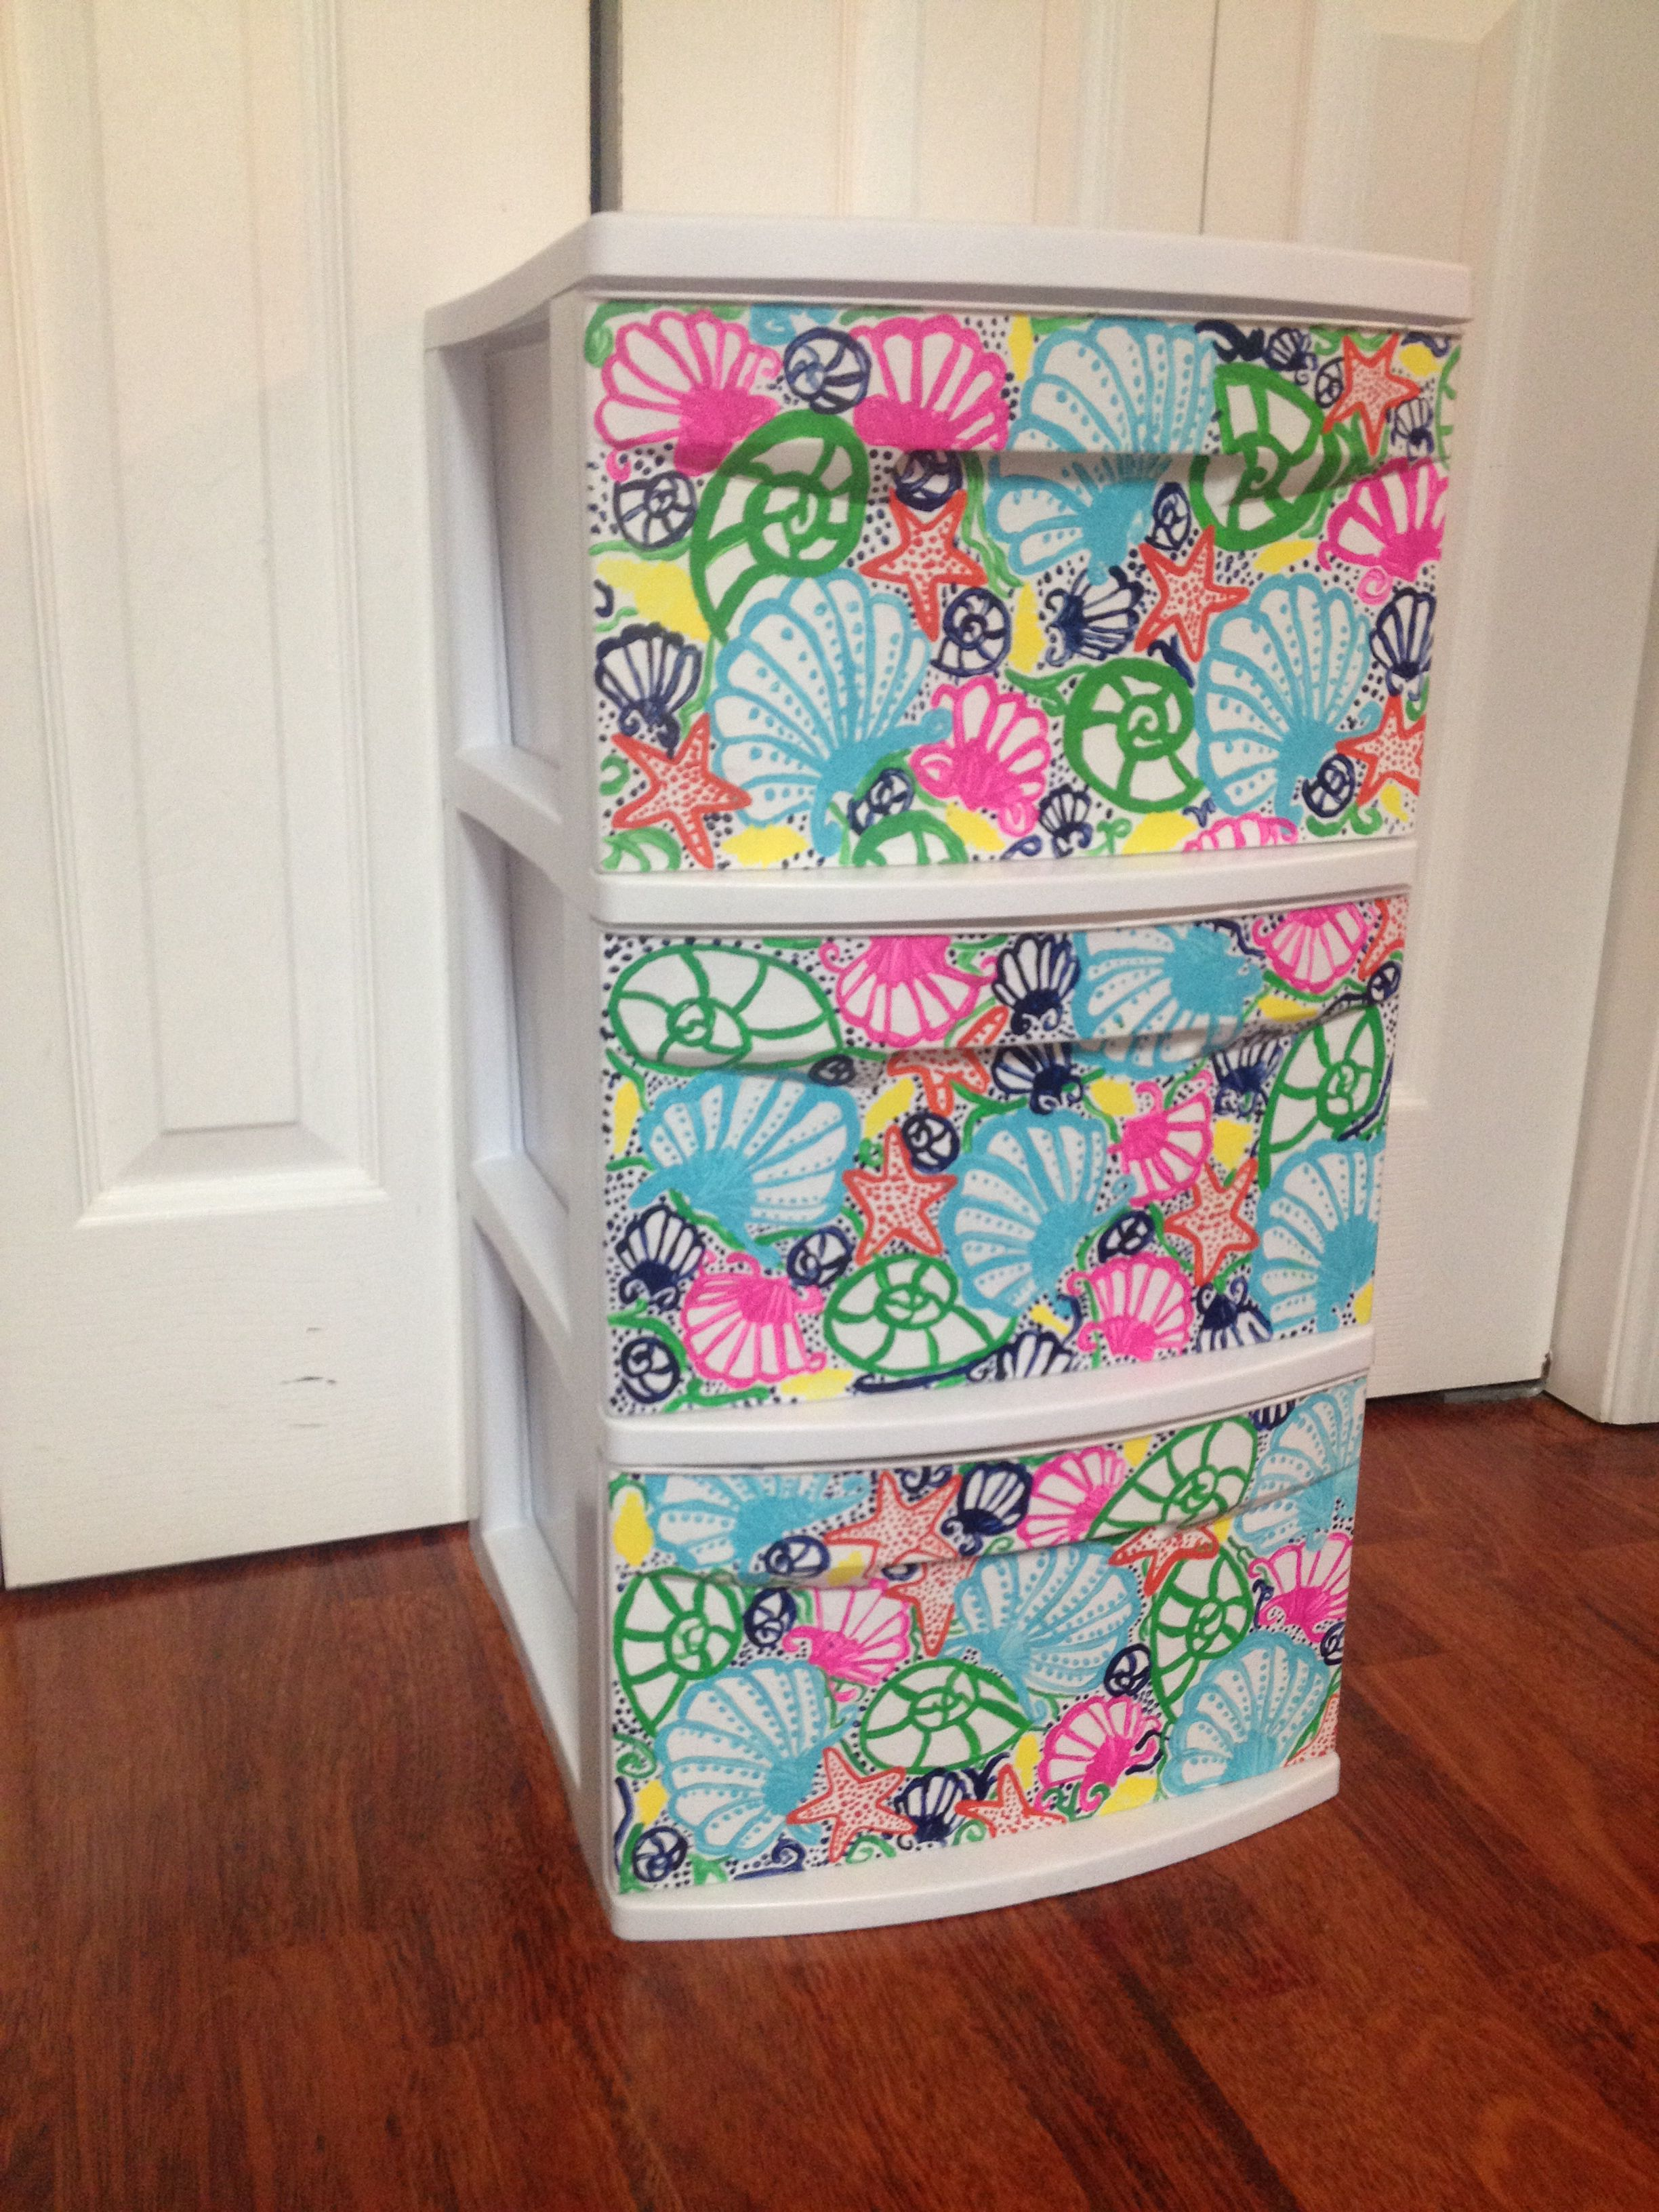 Latest Project Painting Lilly On Ugly Plastic Drawers